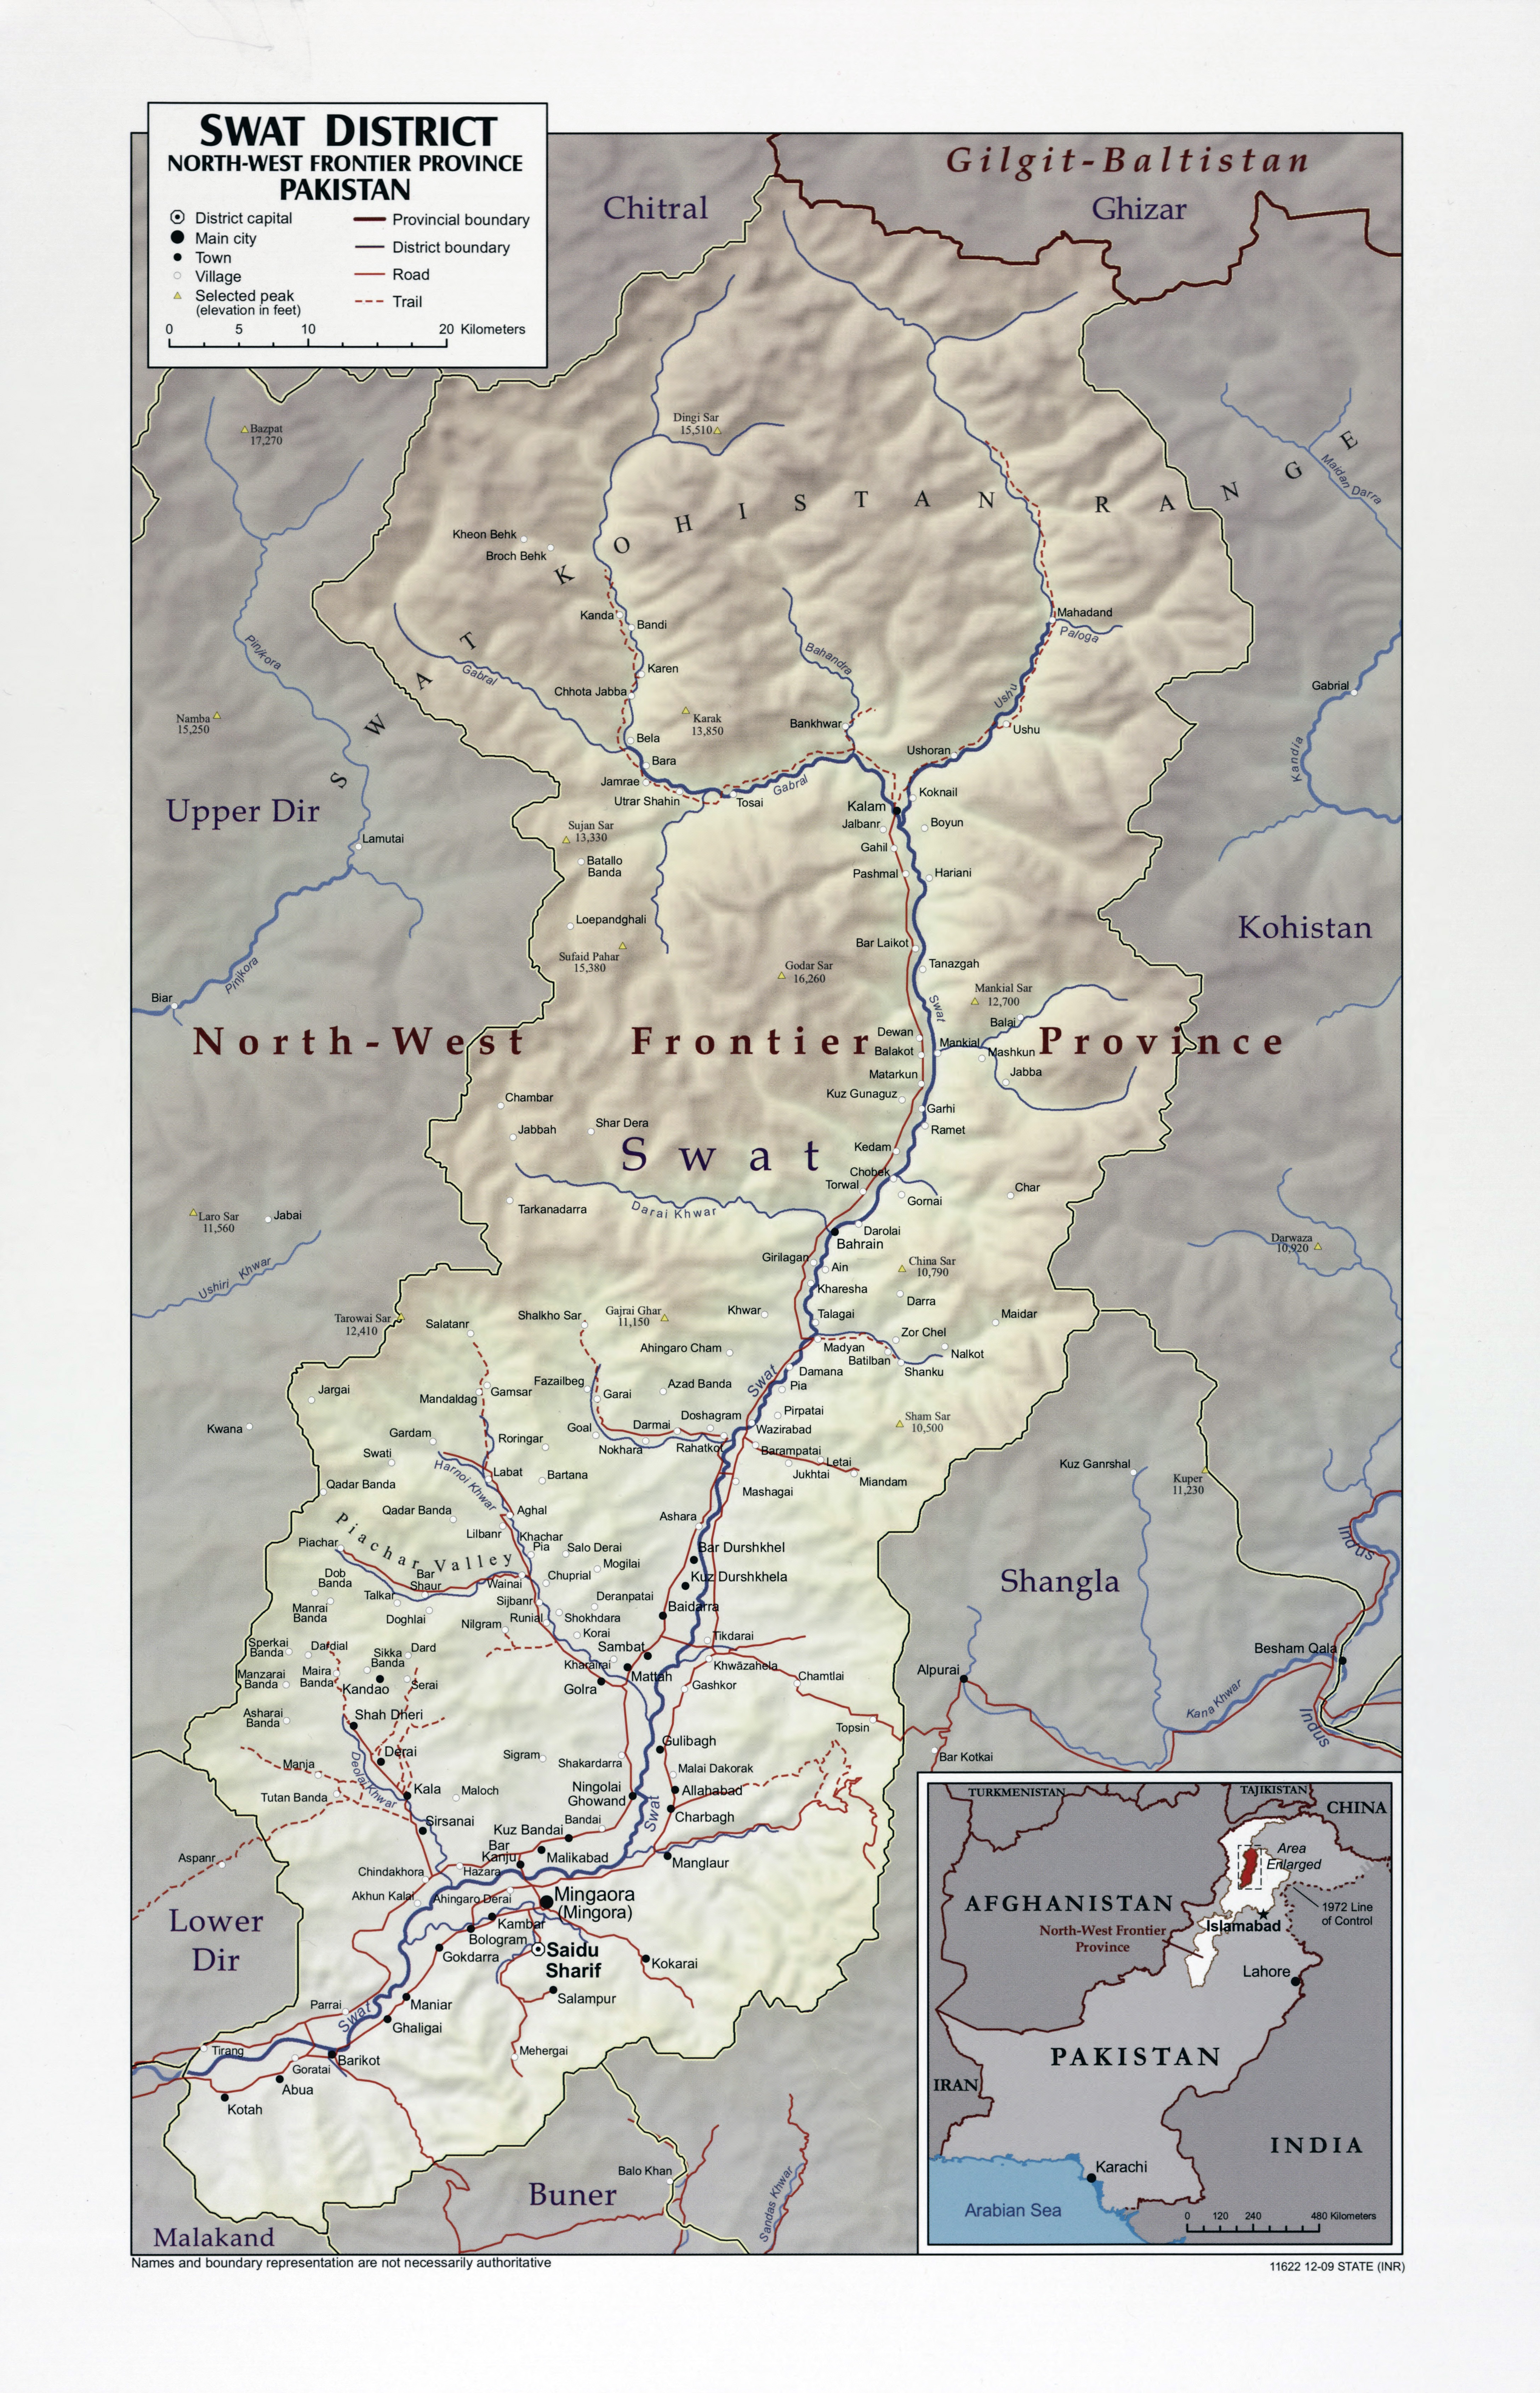 Large scale Swat District North West Frontier Province map of